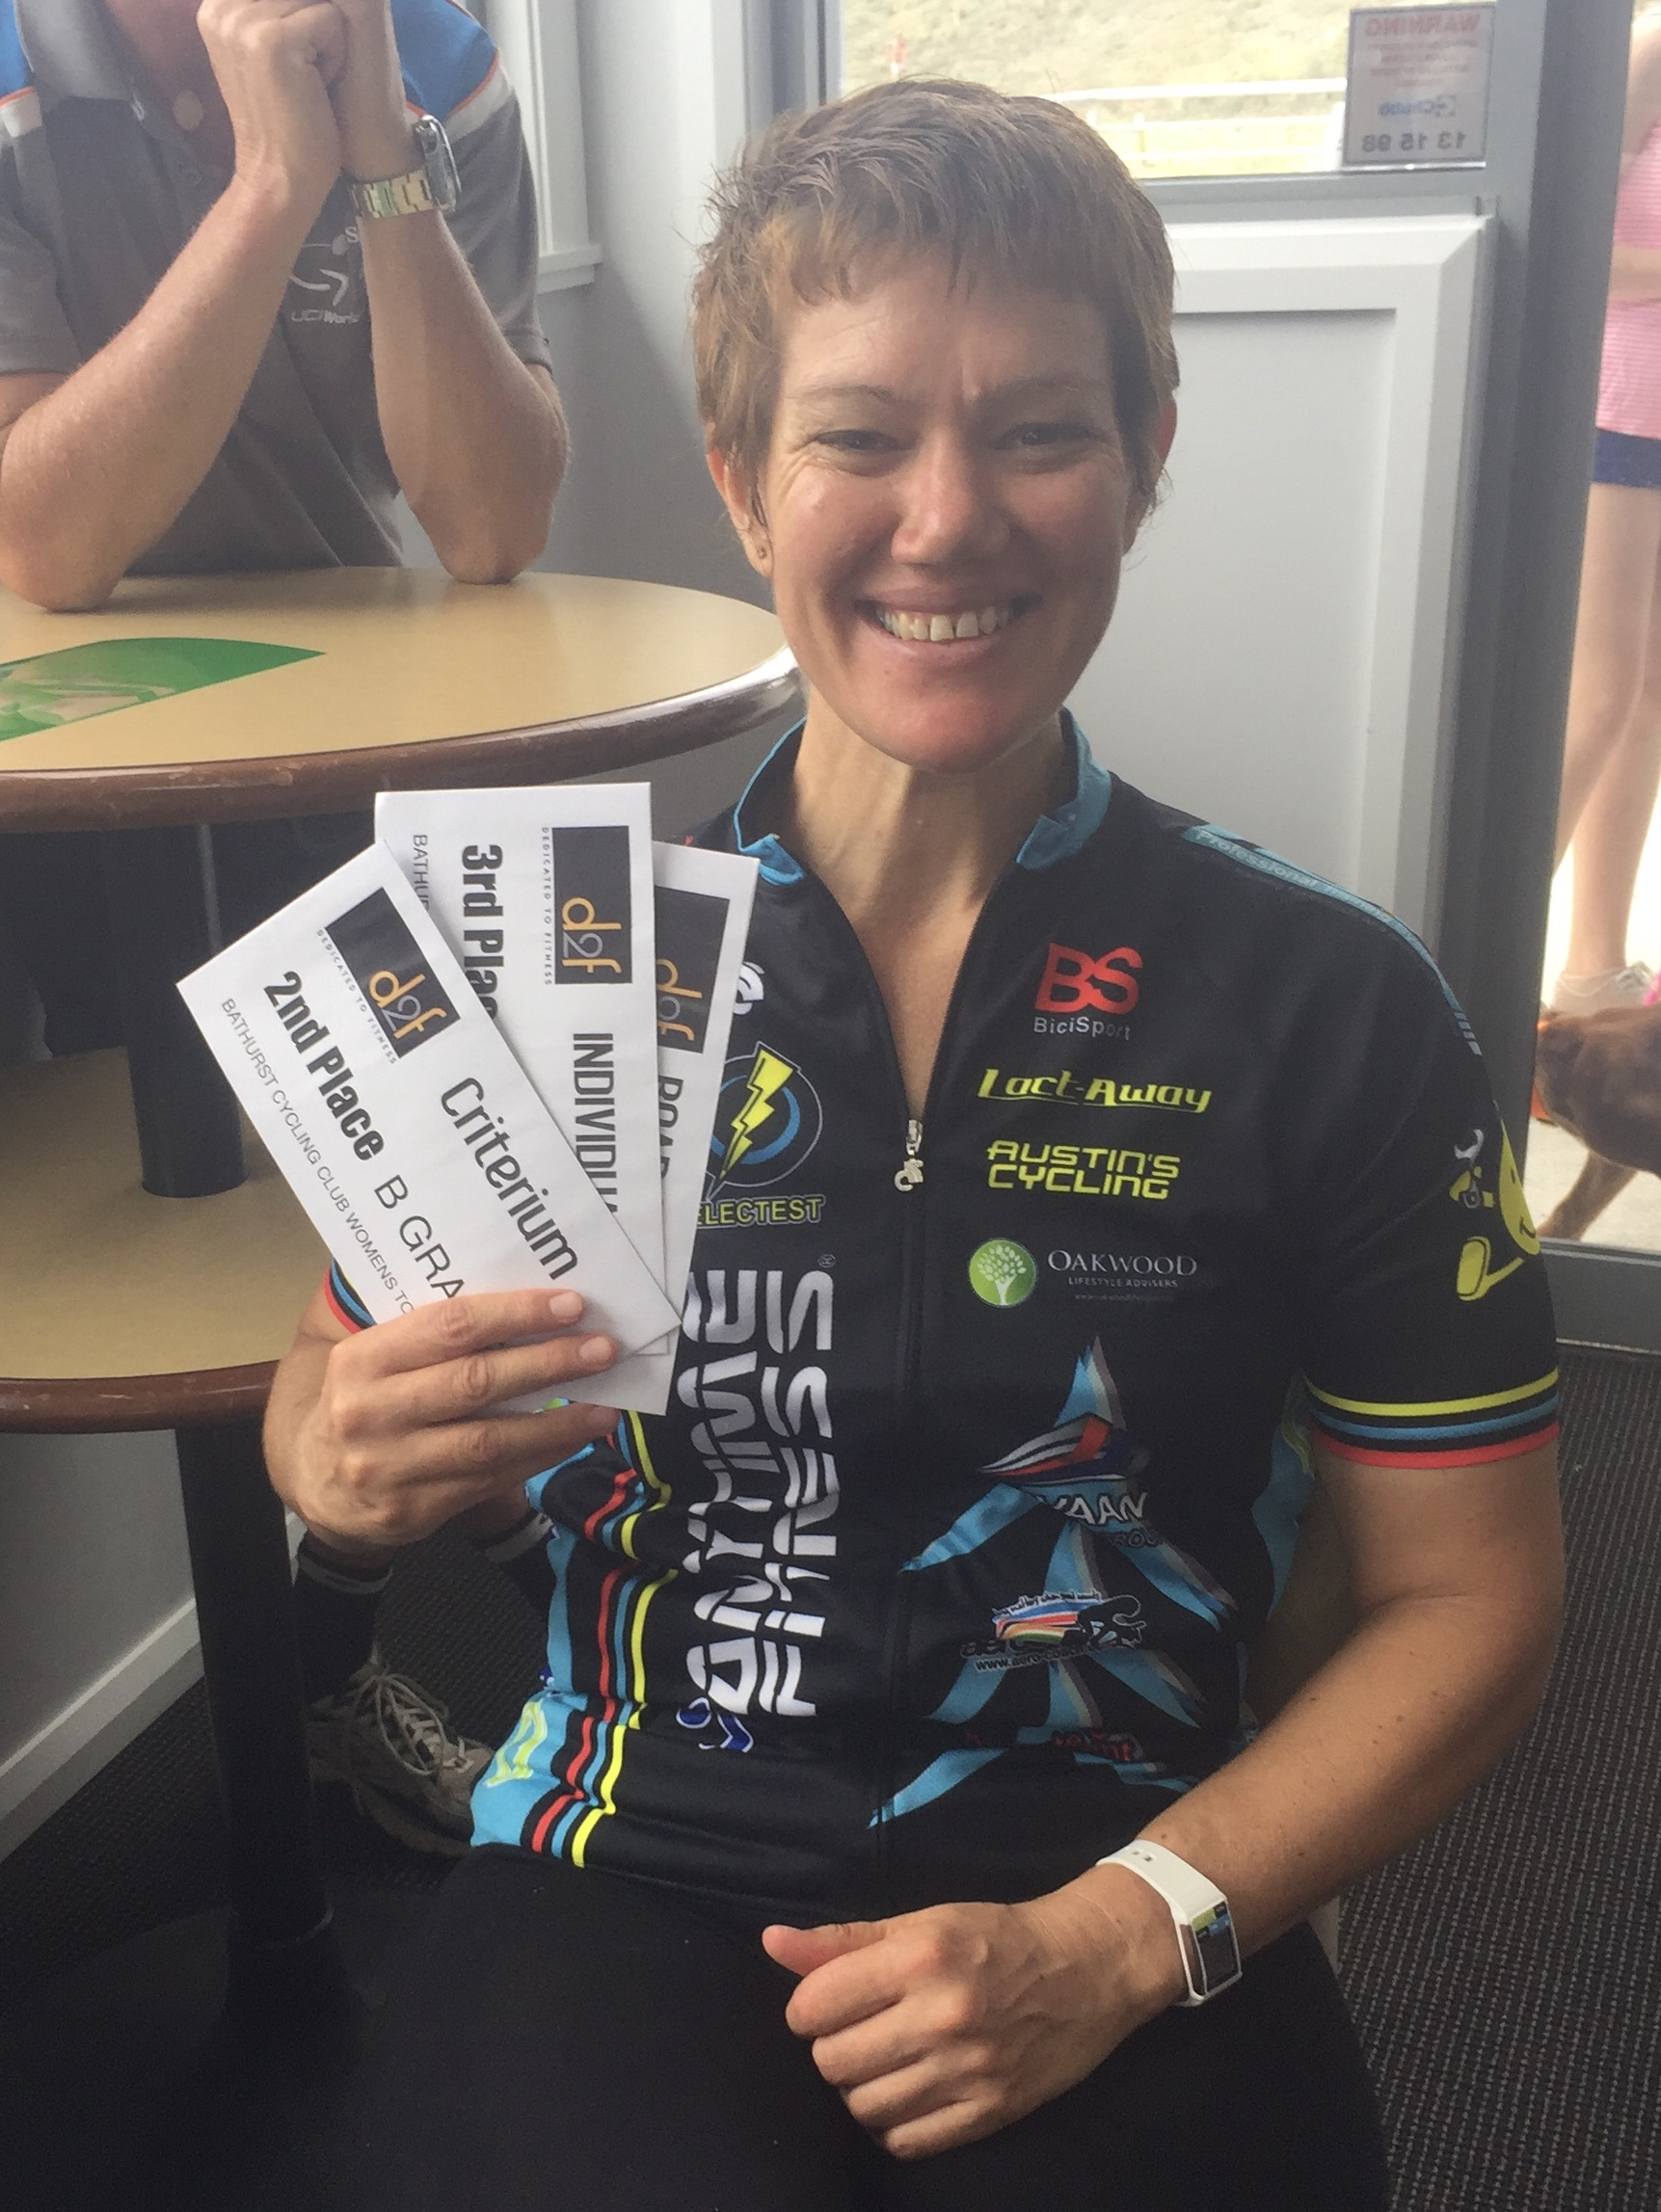 Bathurst Womens Tour - Ruth Strapp (BiciSport)